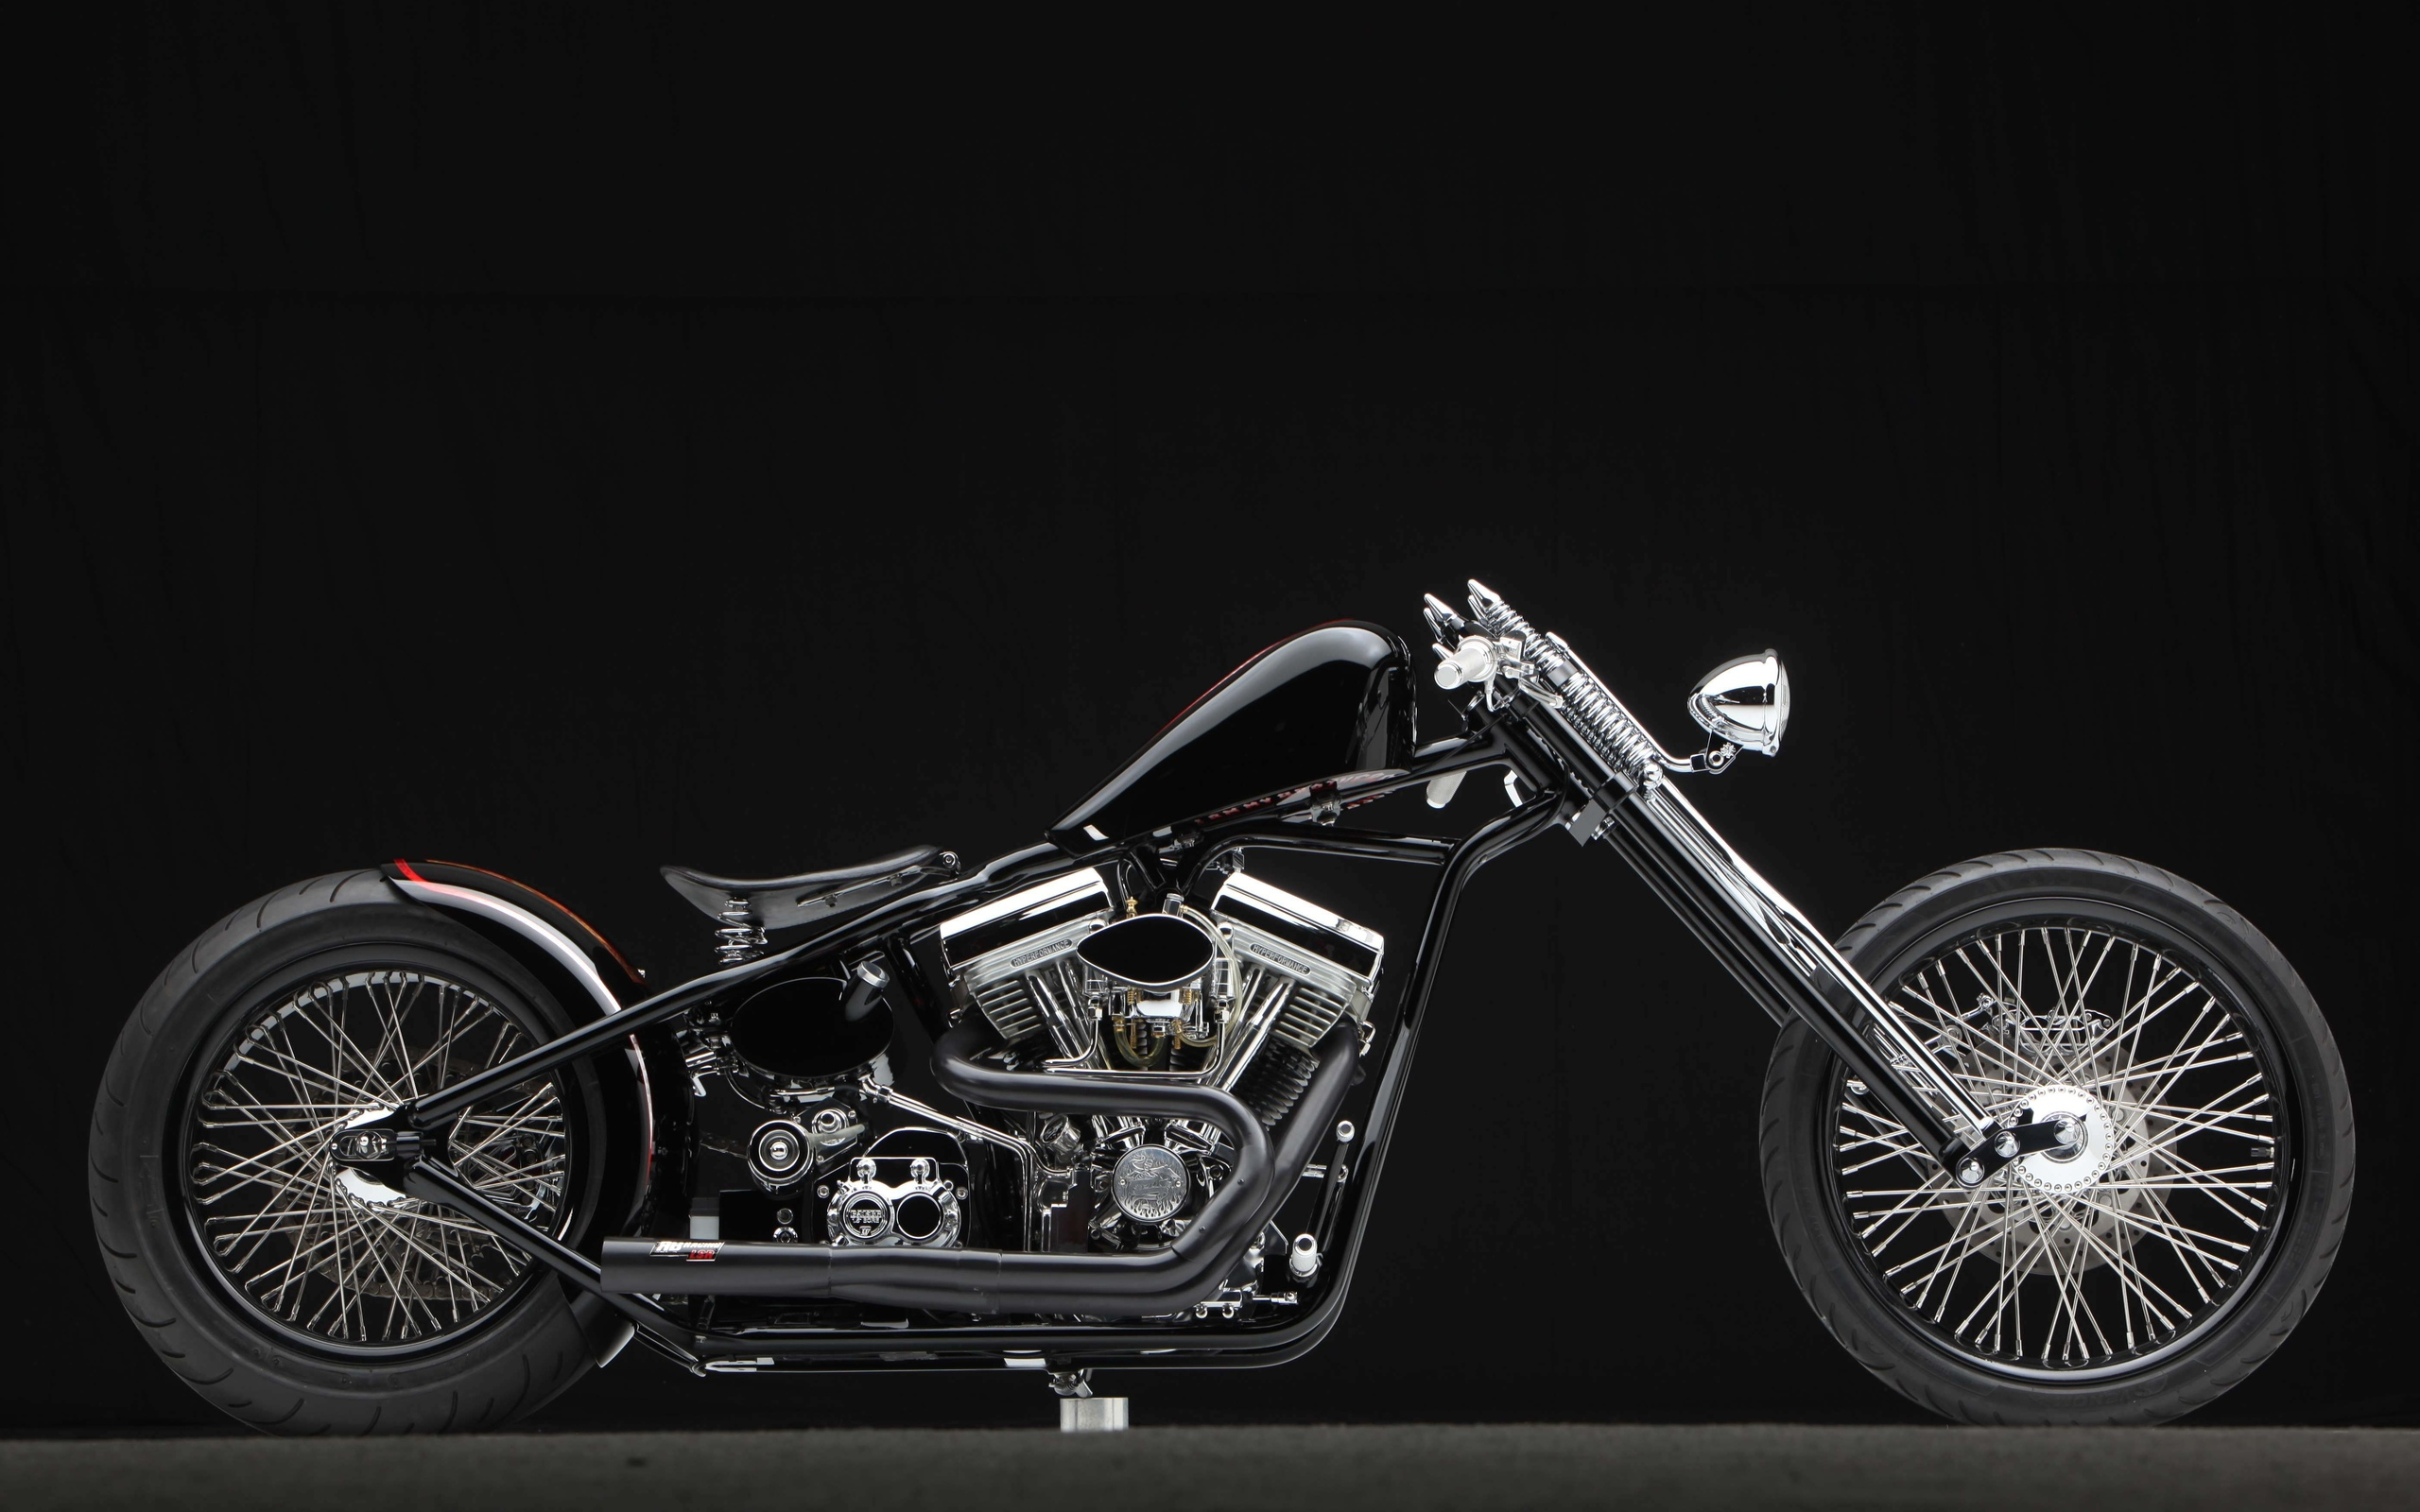 Free Download Motorcycle Bike Motorbike Chopper Custom